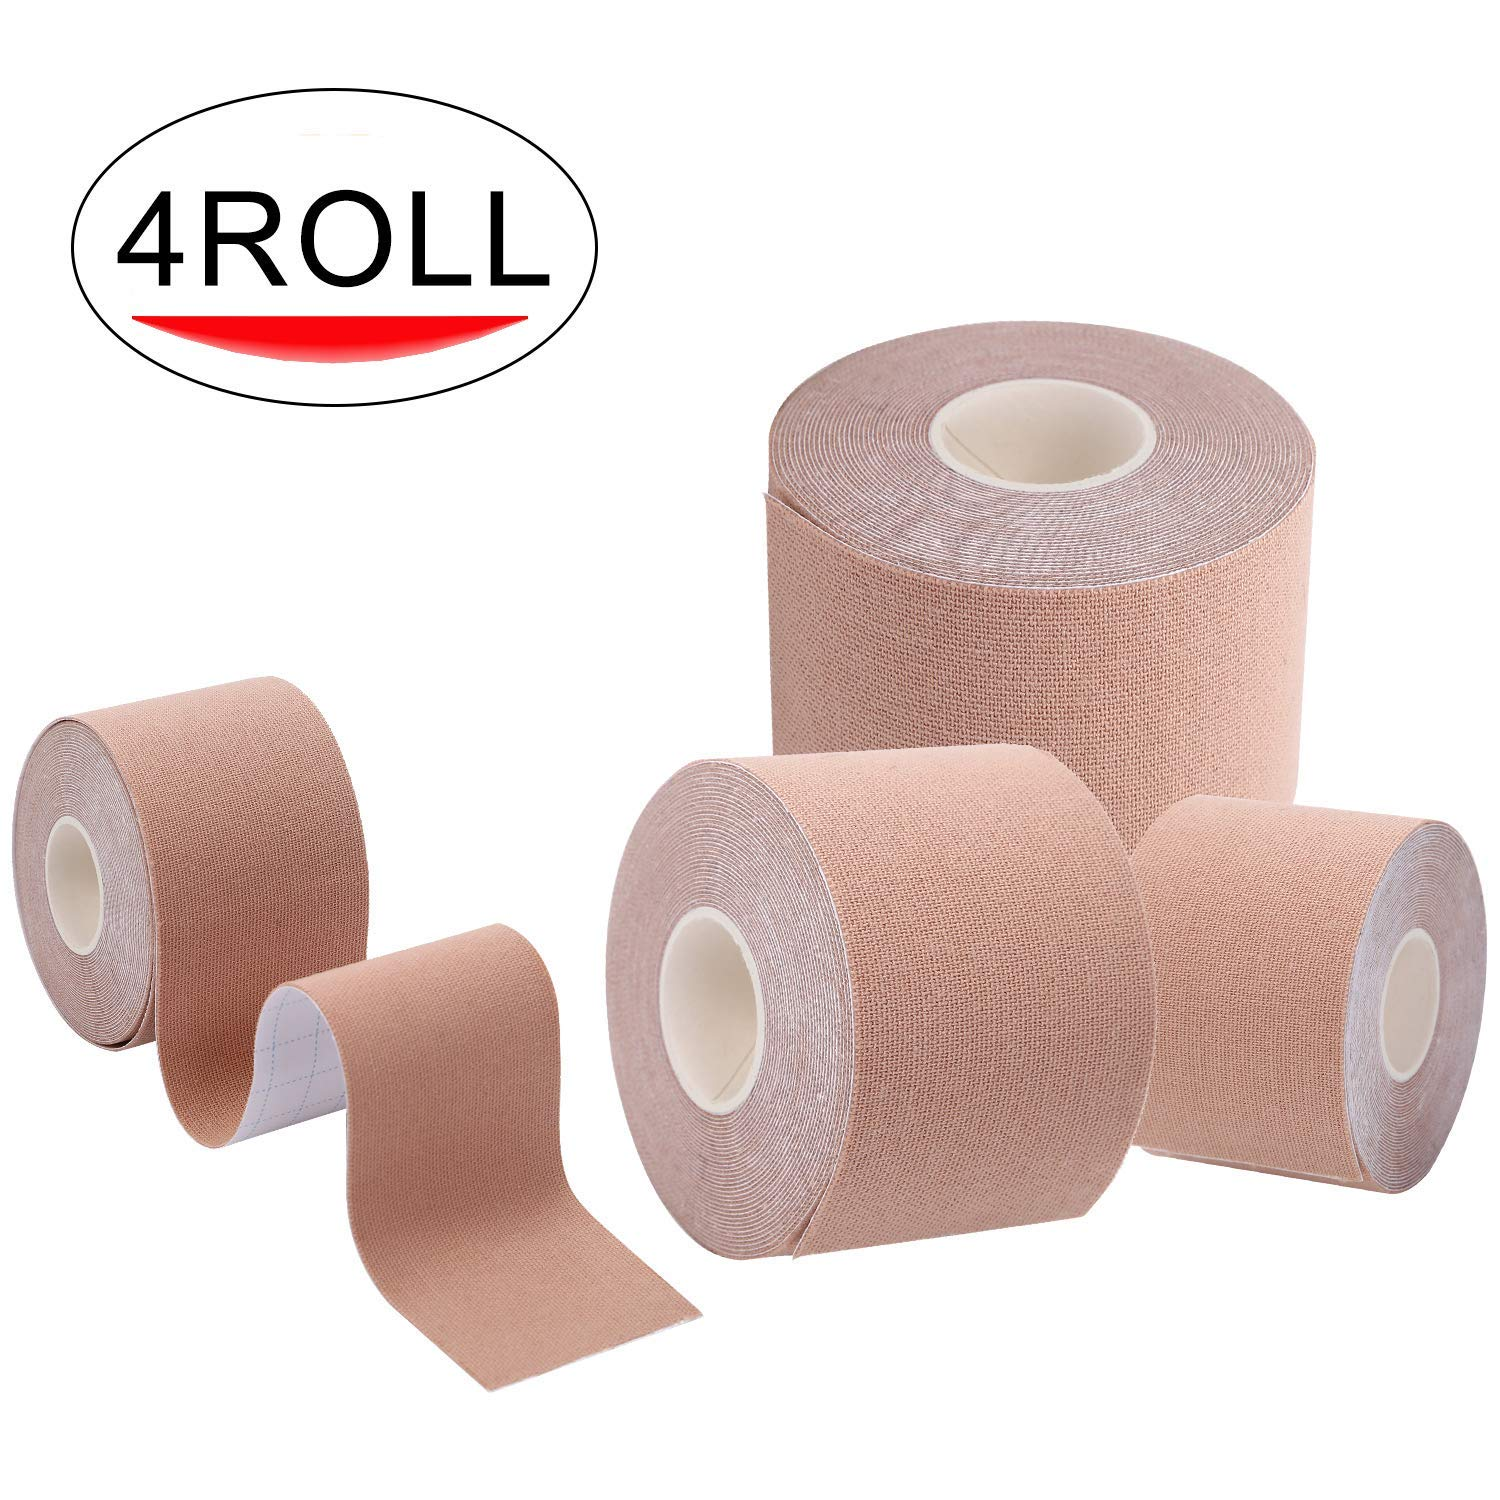 """HQD Kinesiology Physiotherapy Sports Tape (4 Rolls Pack) Uncut 2"""" x 16.4"""" Therapeutic Sports Tape for Elbow and Knee Shoulder Elastic Stretch, Breathable, Relief Muscle, Waterproof"""